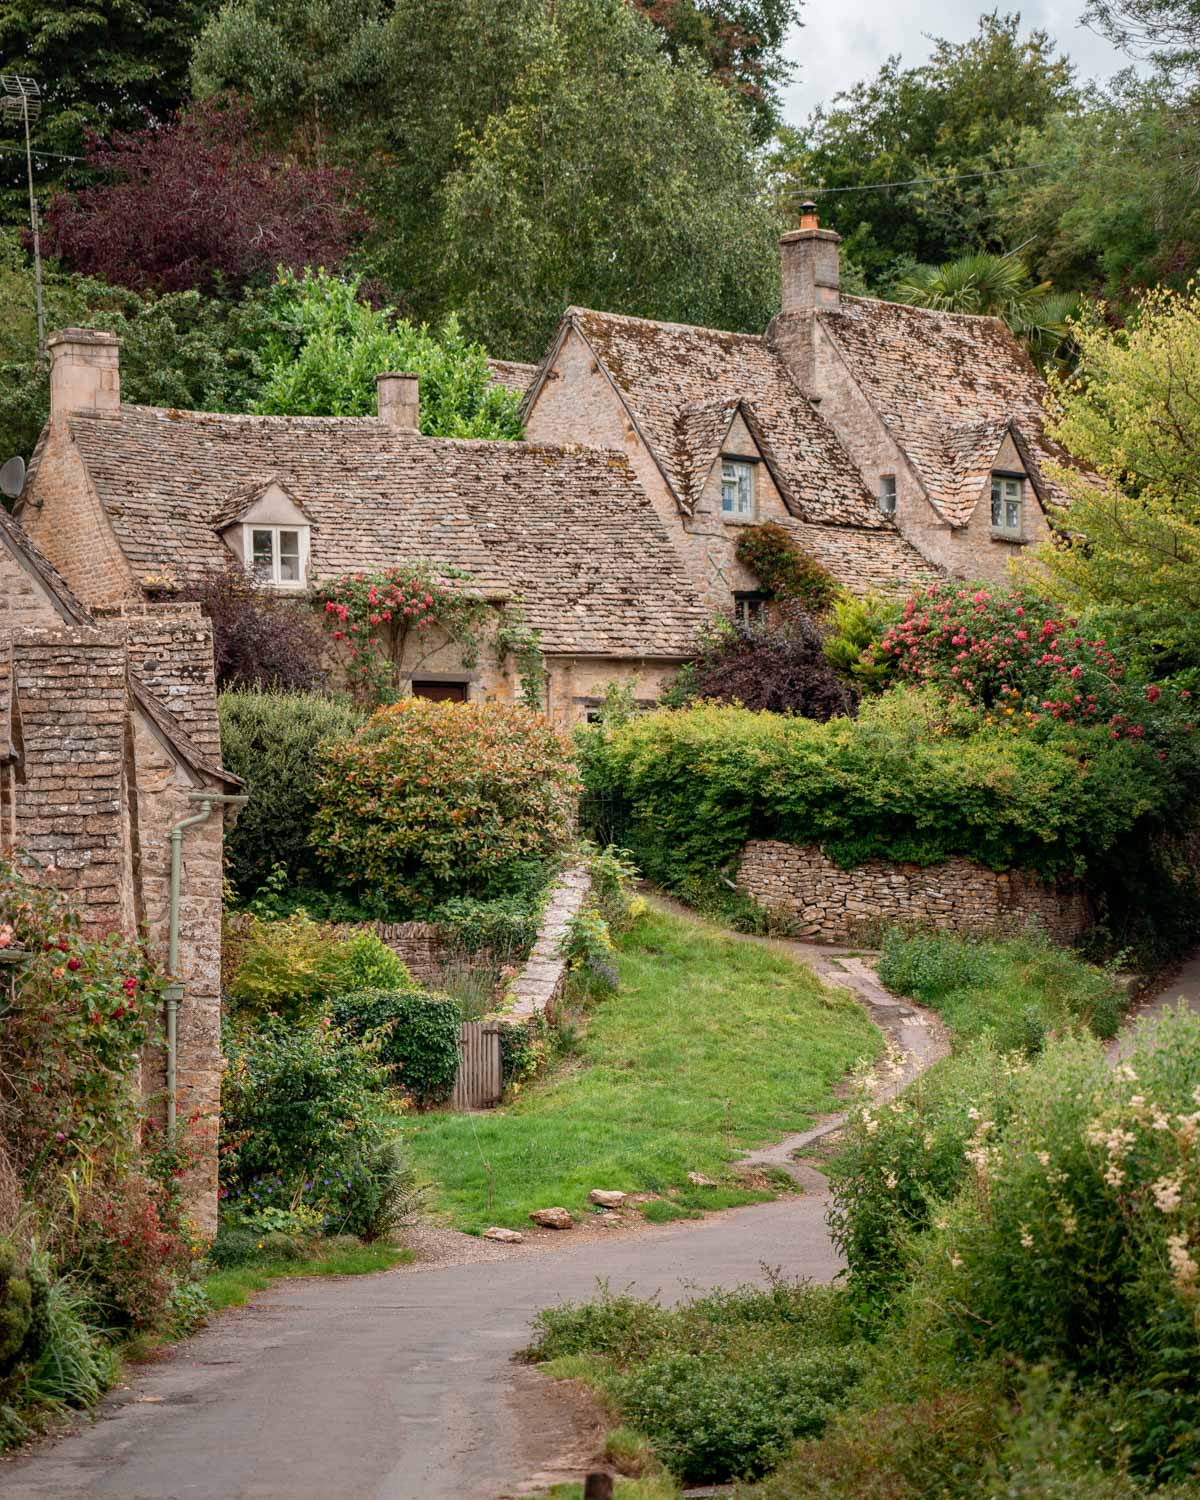 Arlington Row, Bibury - one of the most photographed rows of cottages in the UK and prettiest English villages